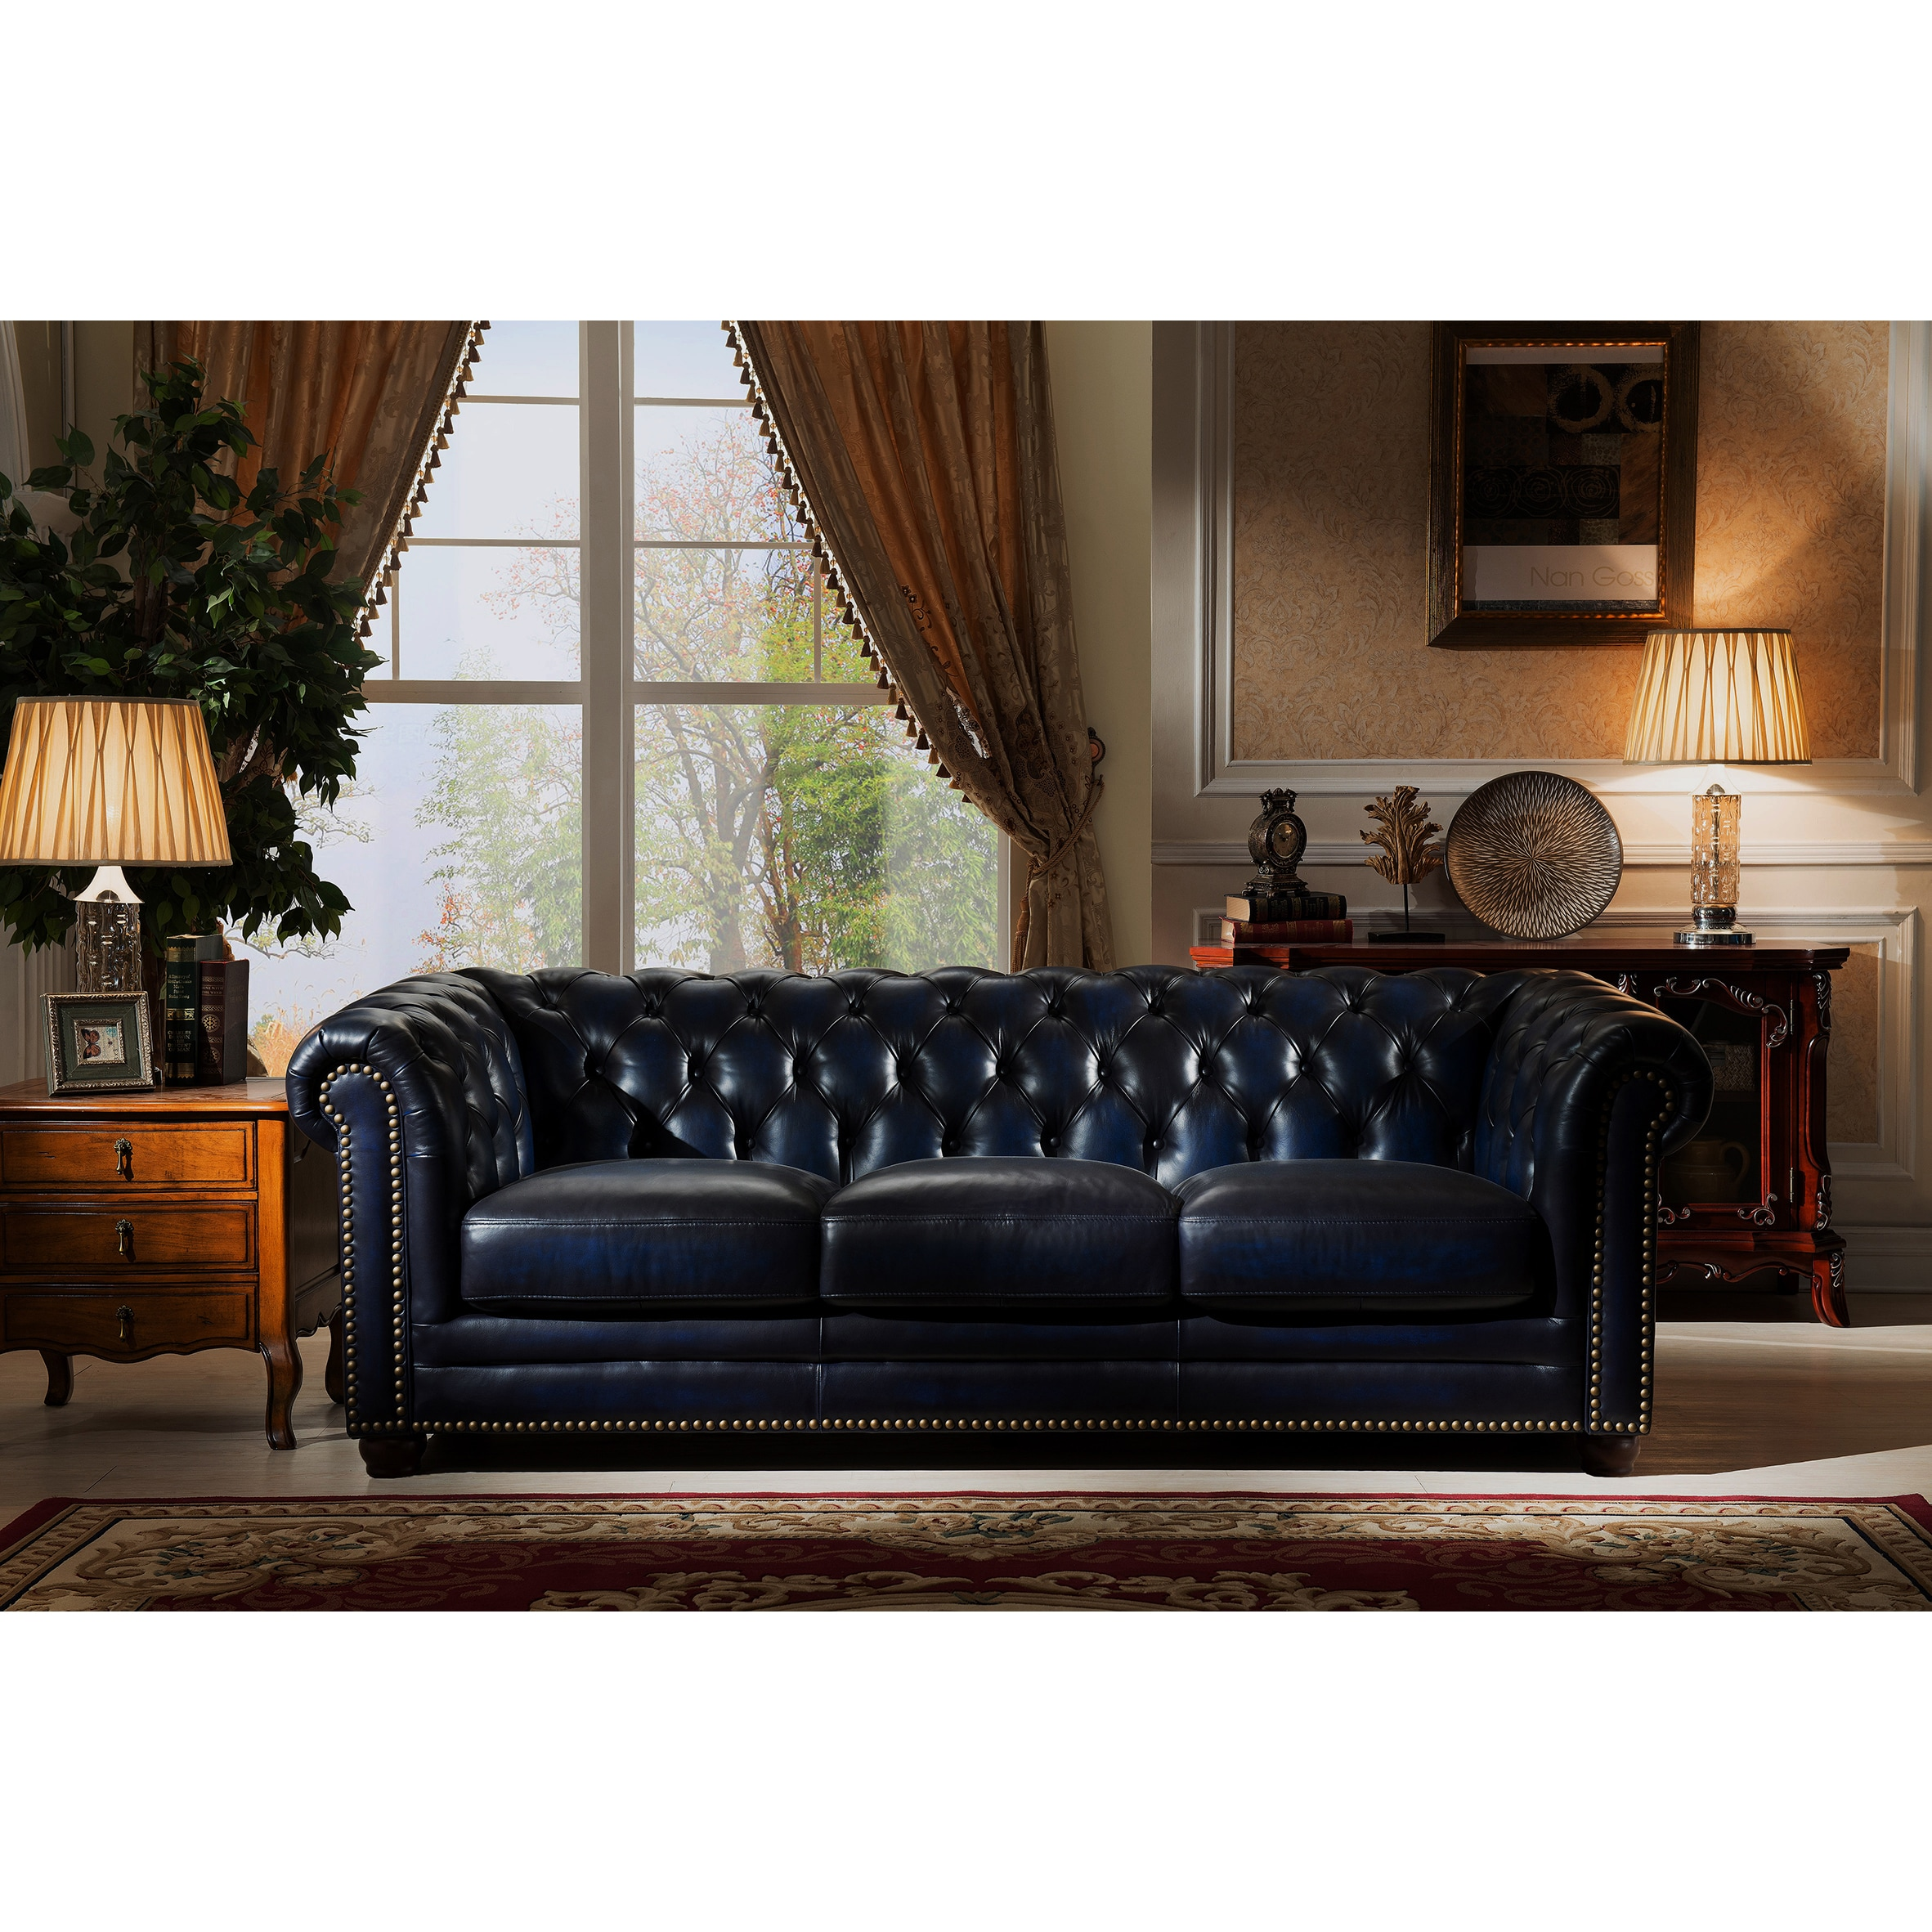 Shop Nebraska Tufted Genuine Leather Chesterfield Sofa with Feather ...